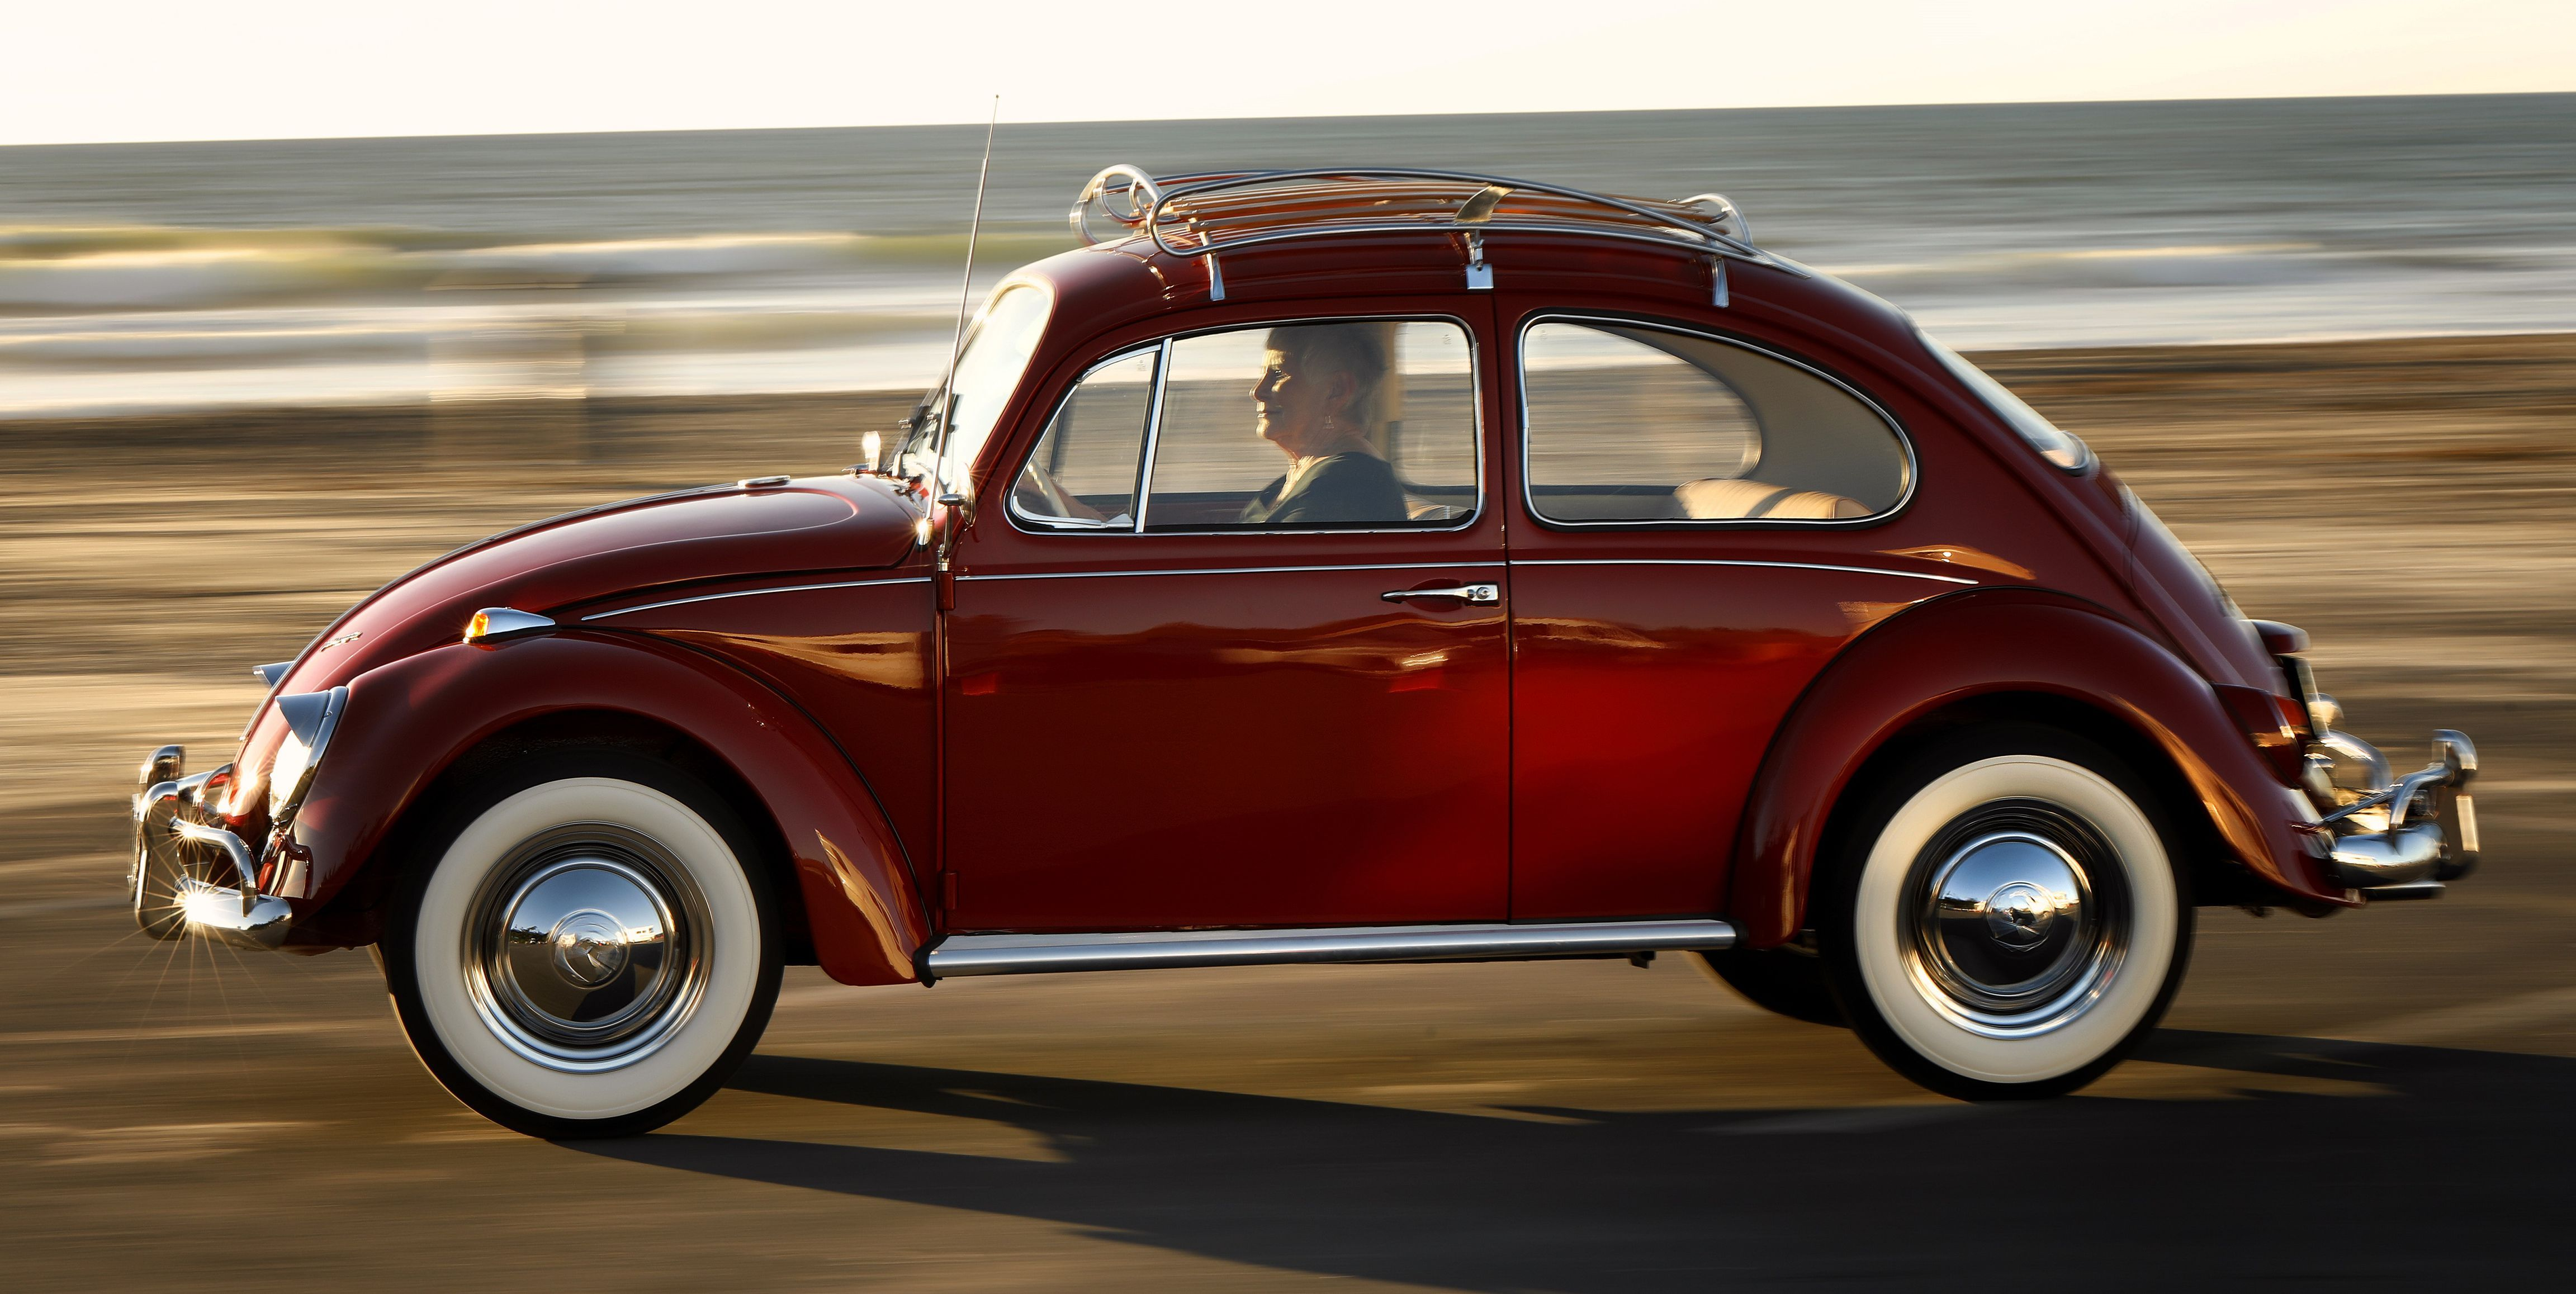 Lucky Owner Gets Her 350,000Mile Beetle Restored by VW